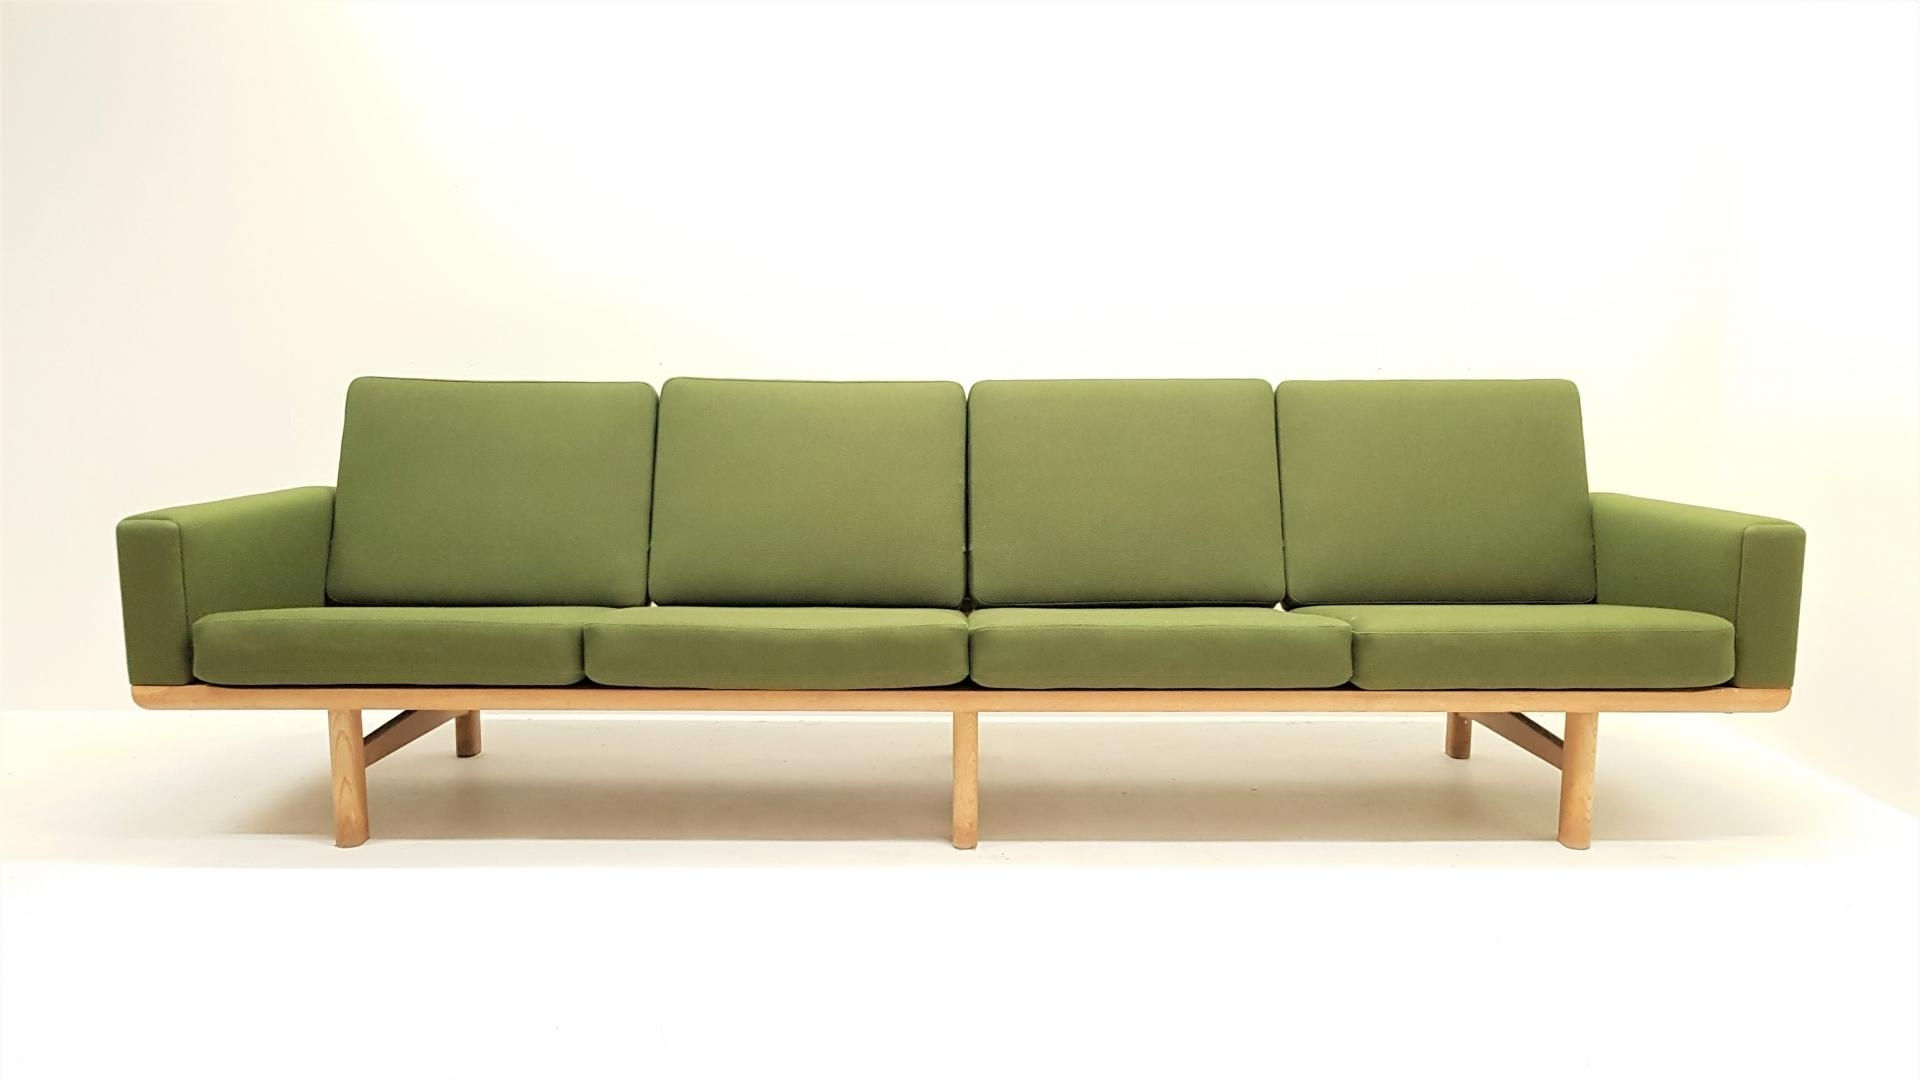 4 Seater Sofas Inside Most Current Mid Century Ge 236/4 4 Seater Sofahans J. Wegner For Getama (Gallery 8 of 15)